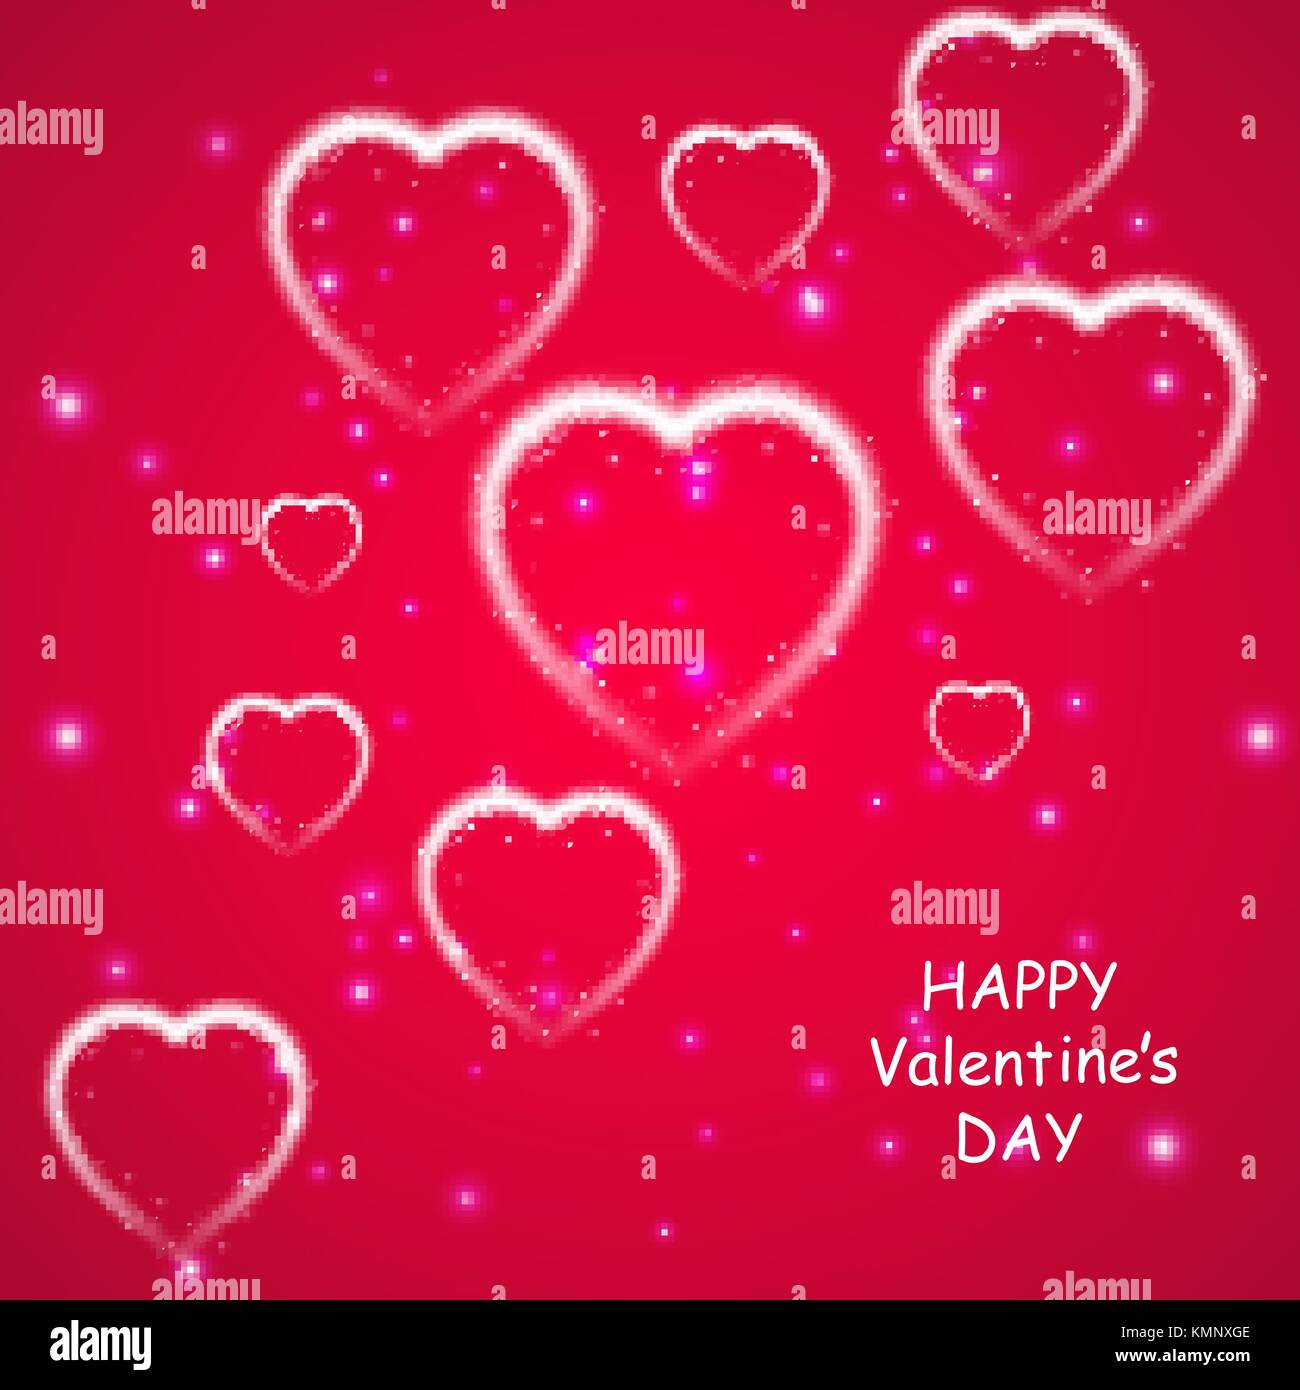 Happy Valentines Day Greeting Card I Love You 14 February Holiday